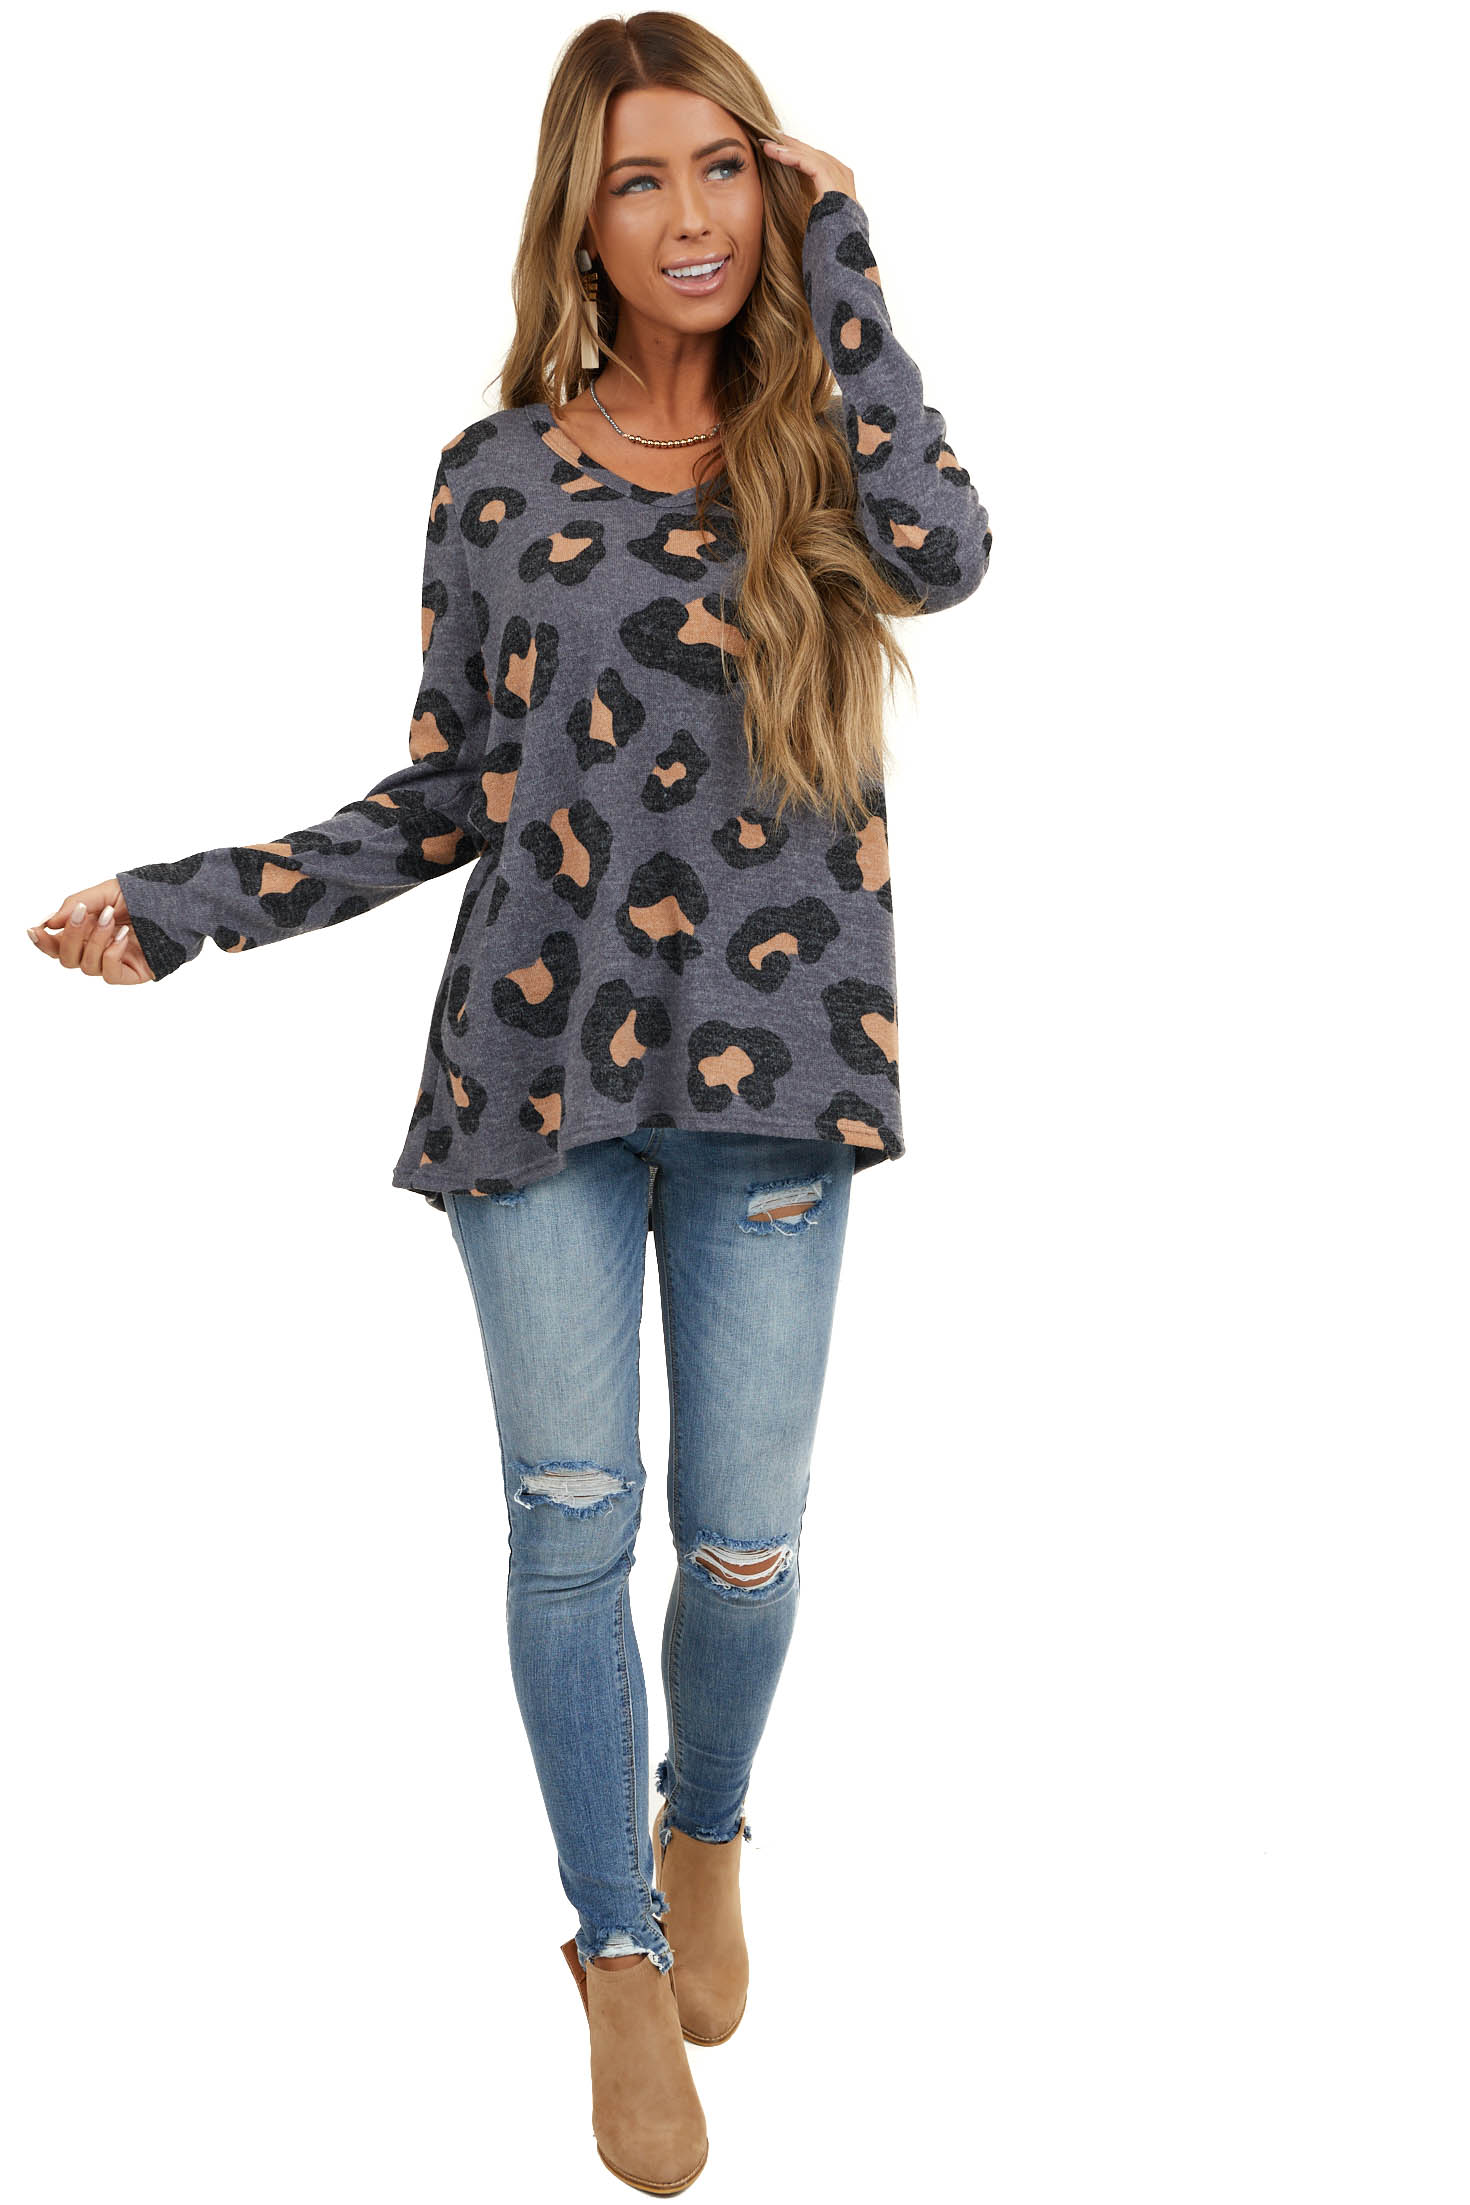 Charcoal Leopard Print Round Neck Long Sleeve Knit Top